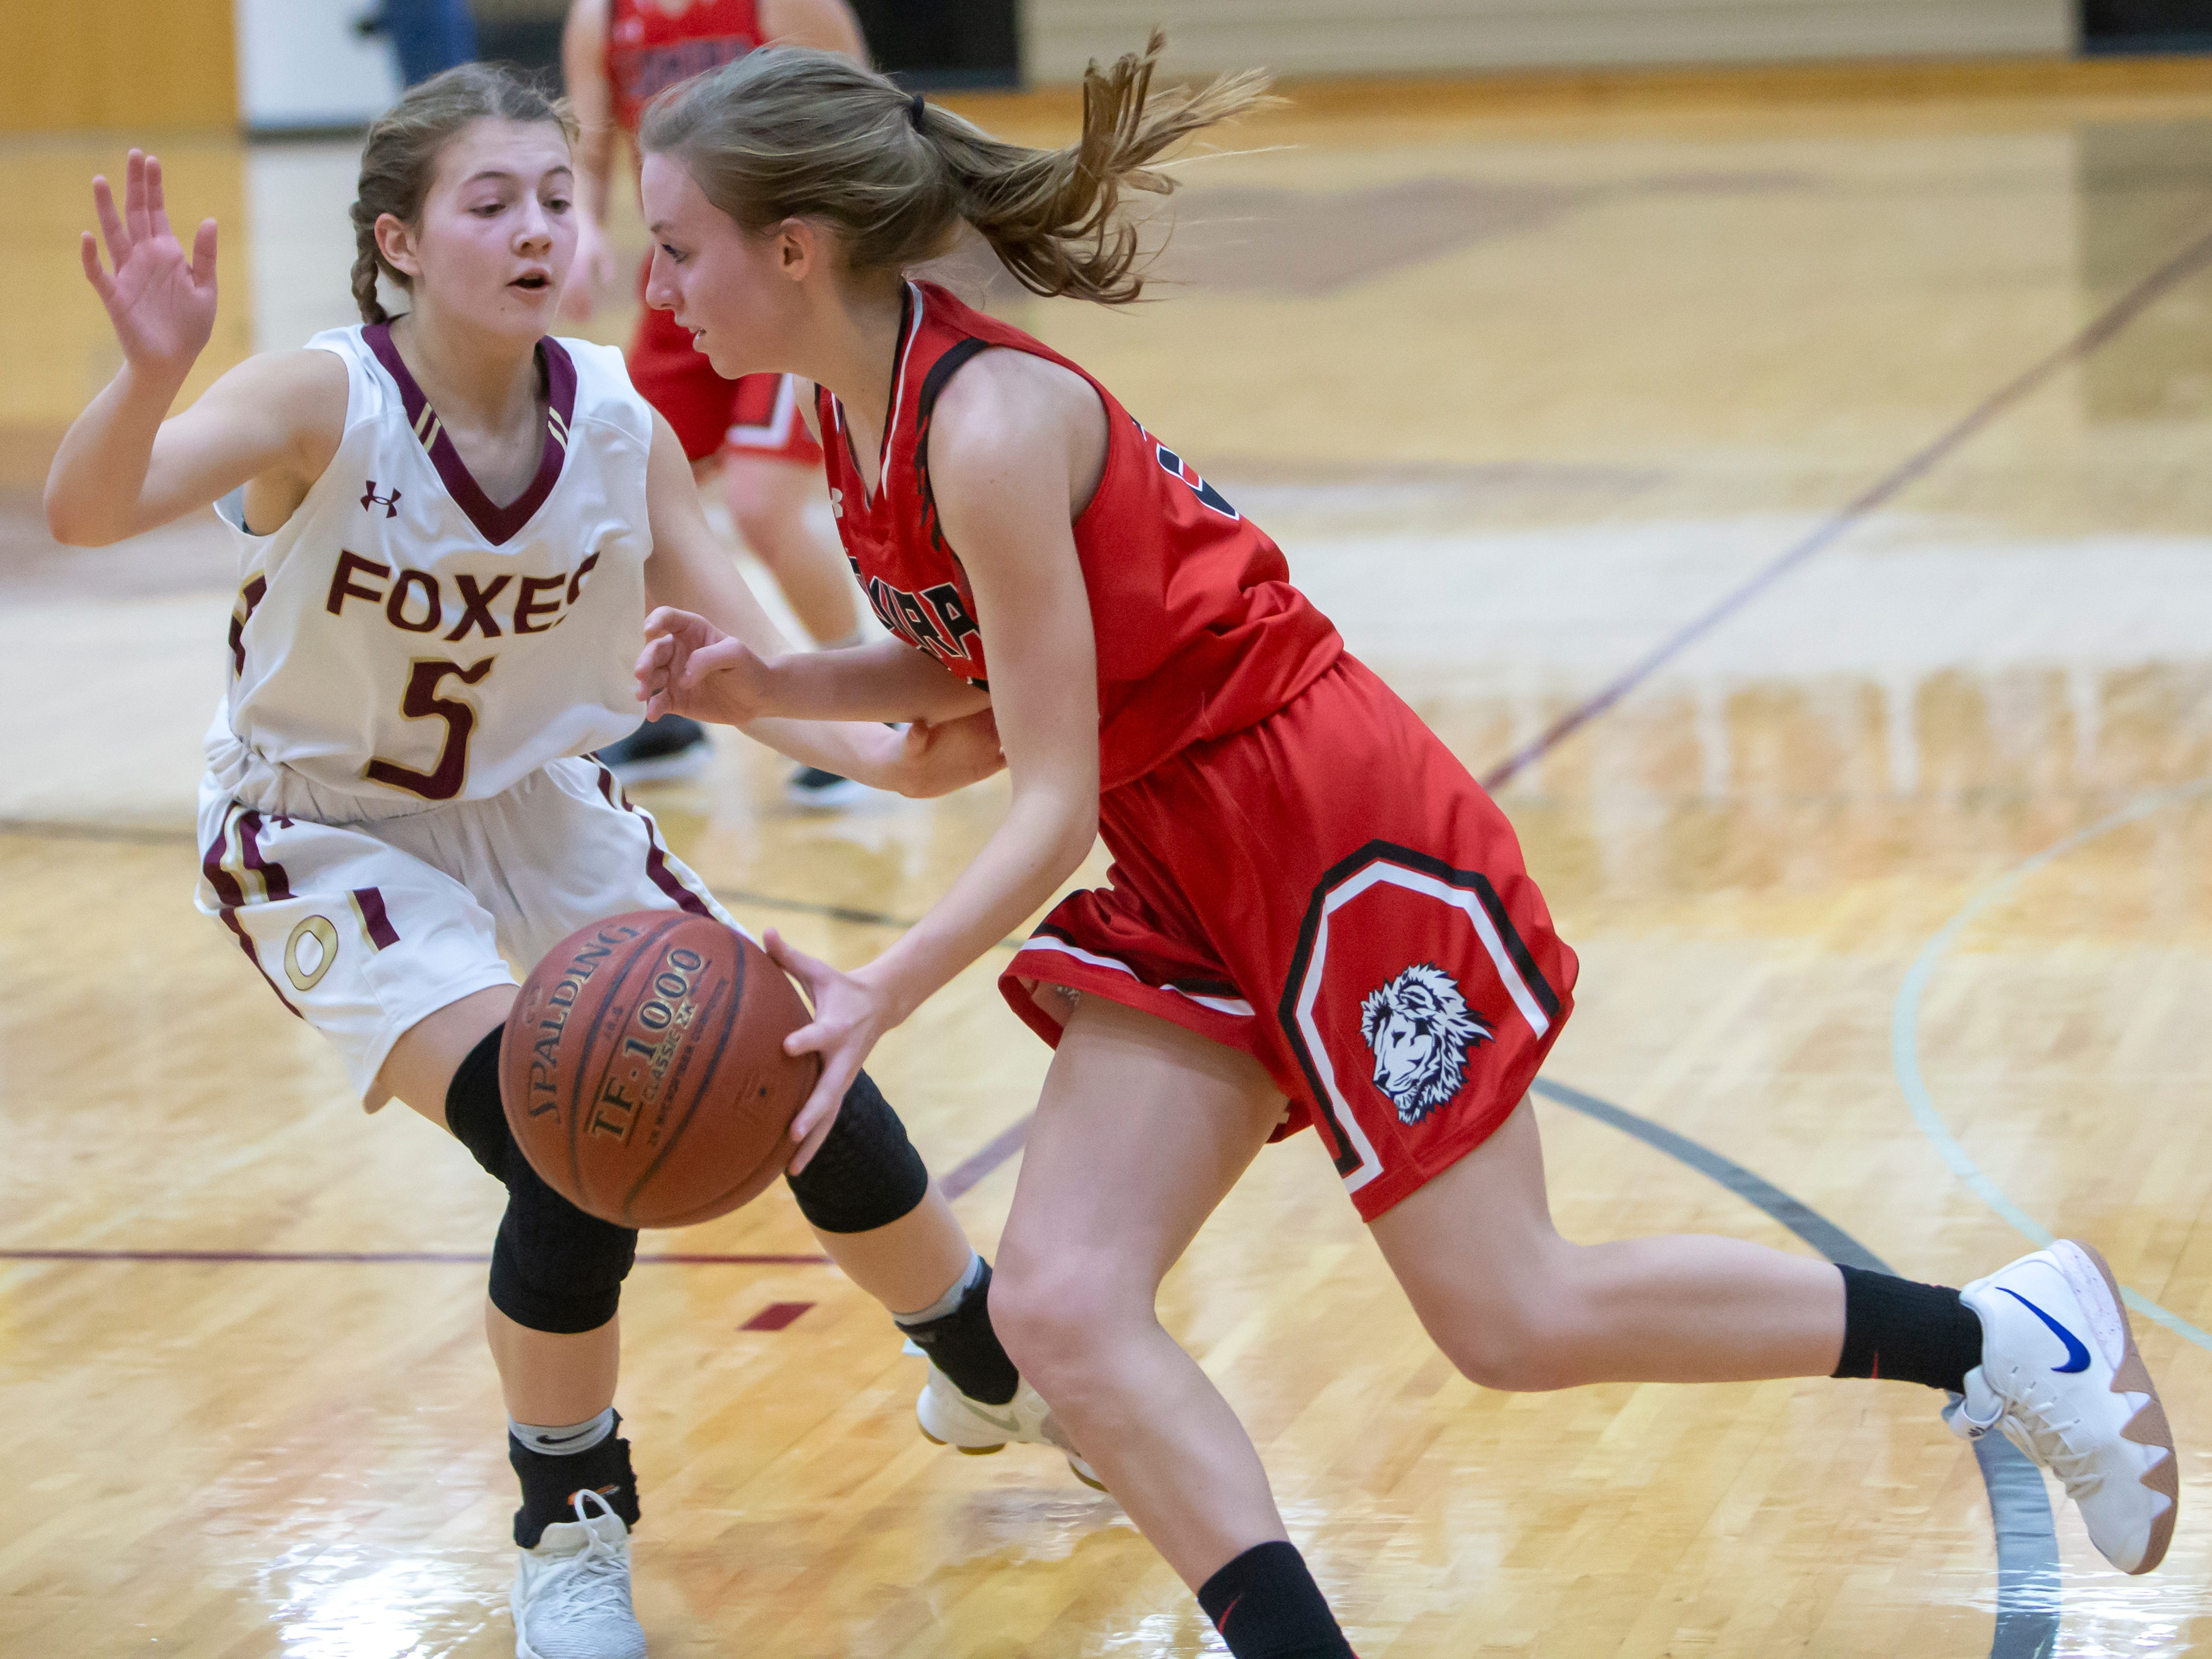 Lomira's Kail Brath drives the to the basket around Omro's Hannah Fedderly at Omro High School on Friday, December 14, 2018.